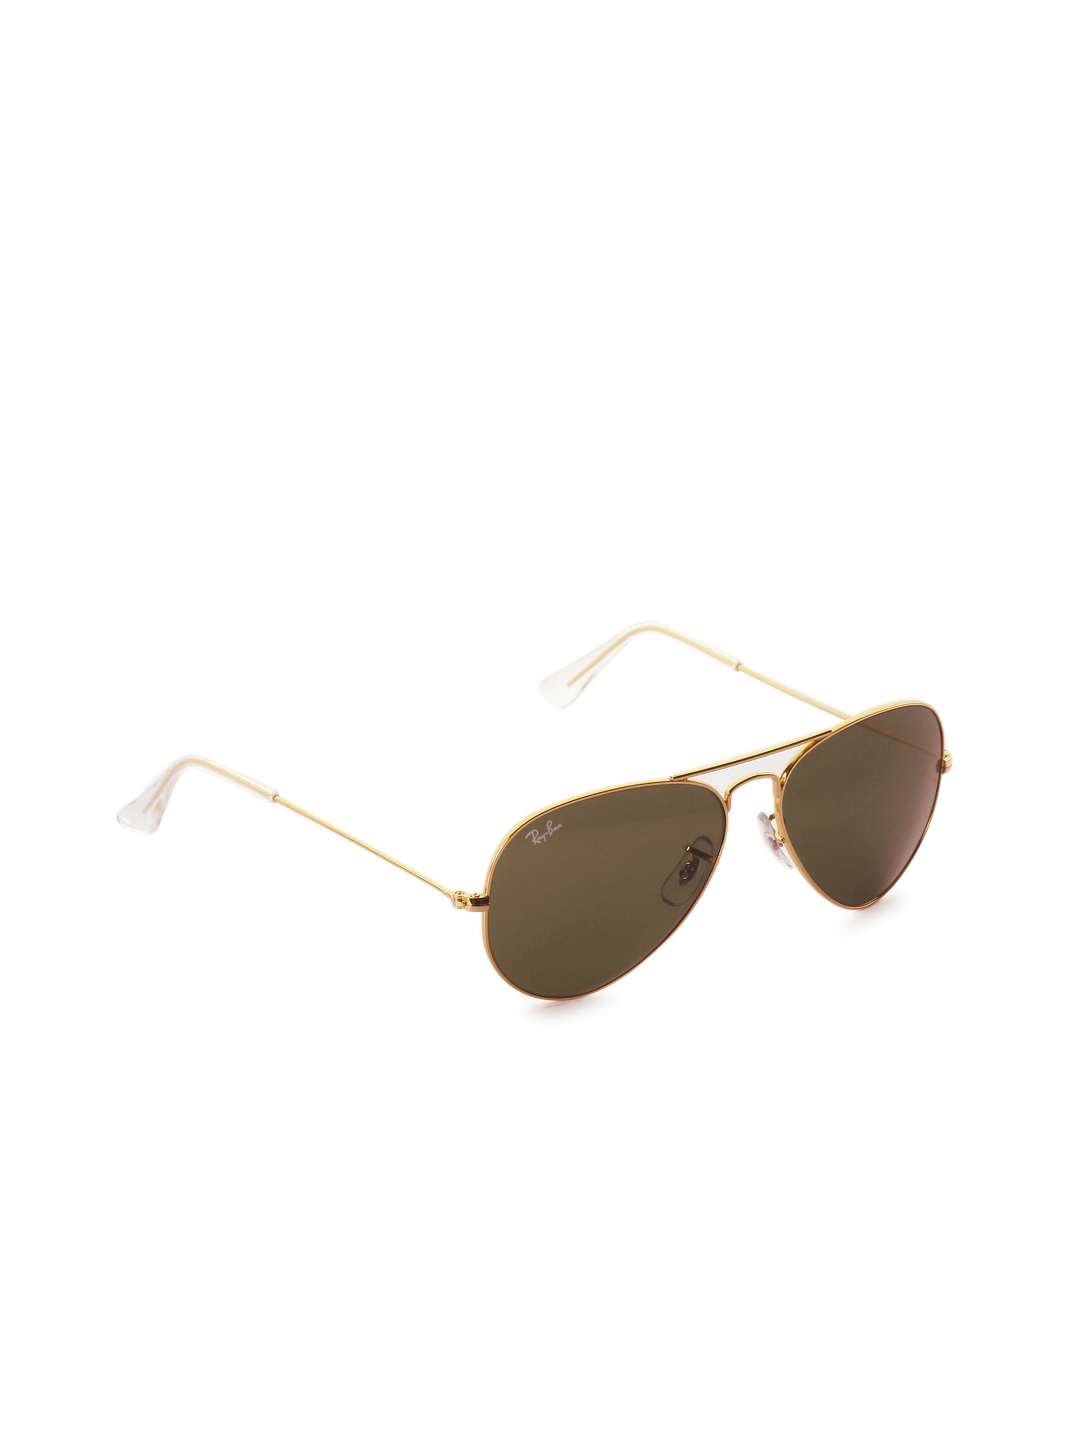 Ray-Ban Men Sunglasses